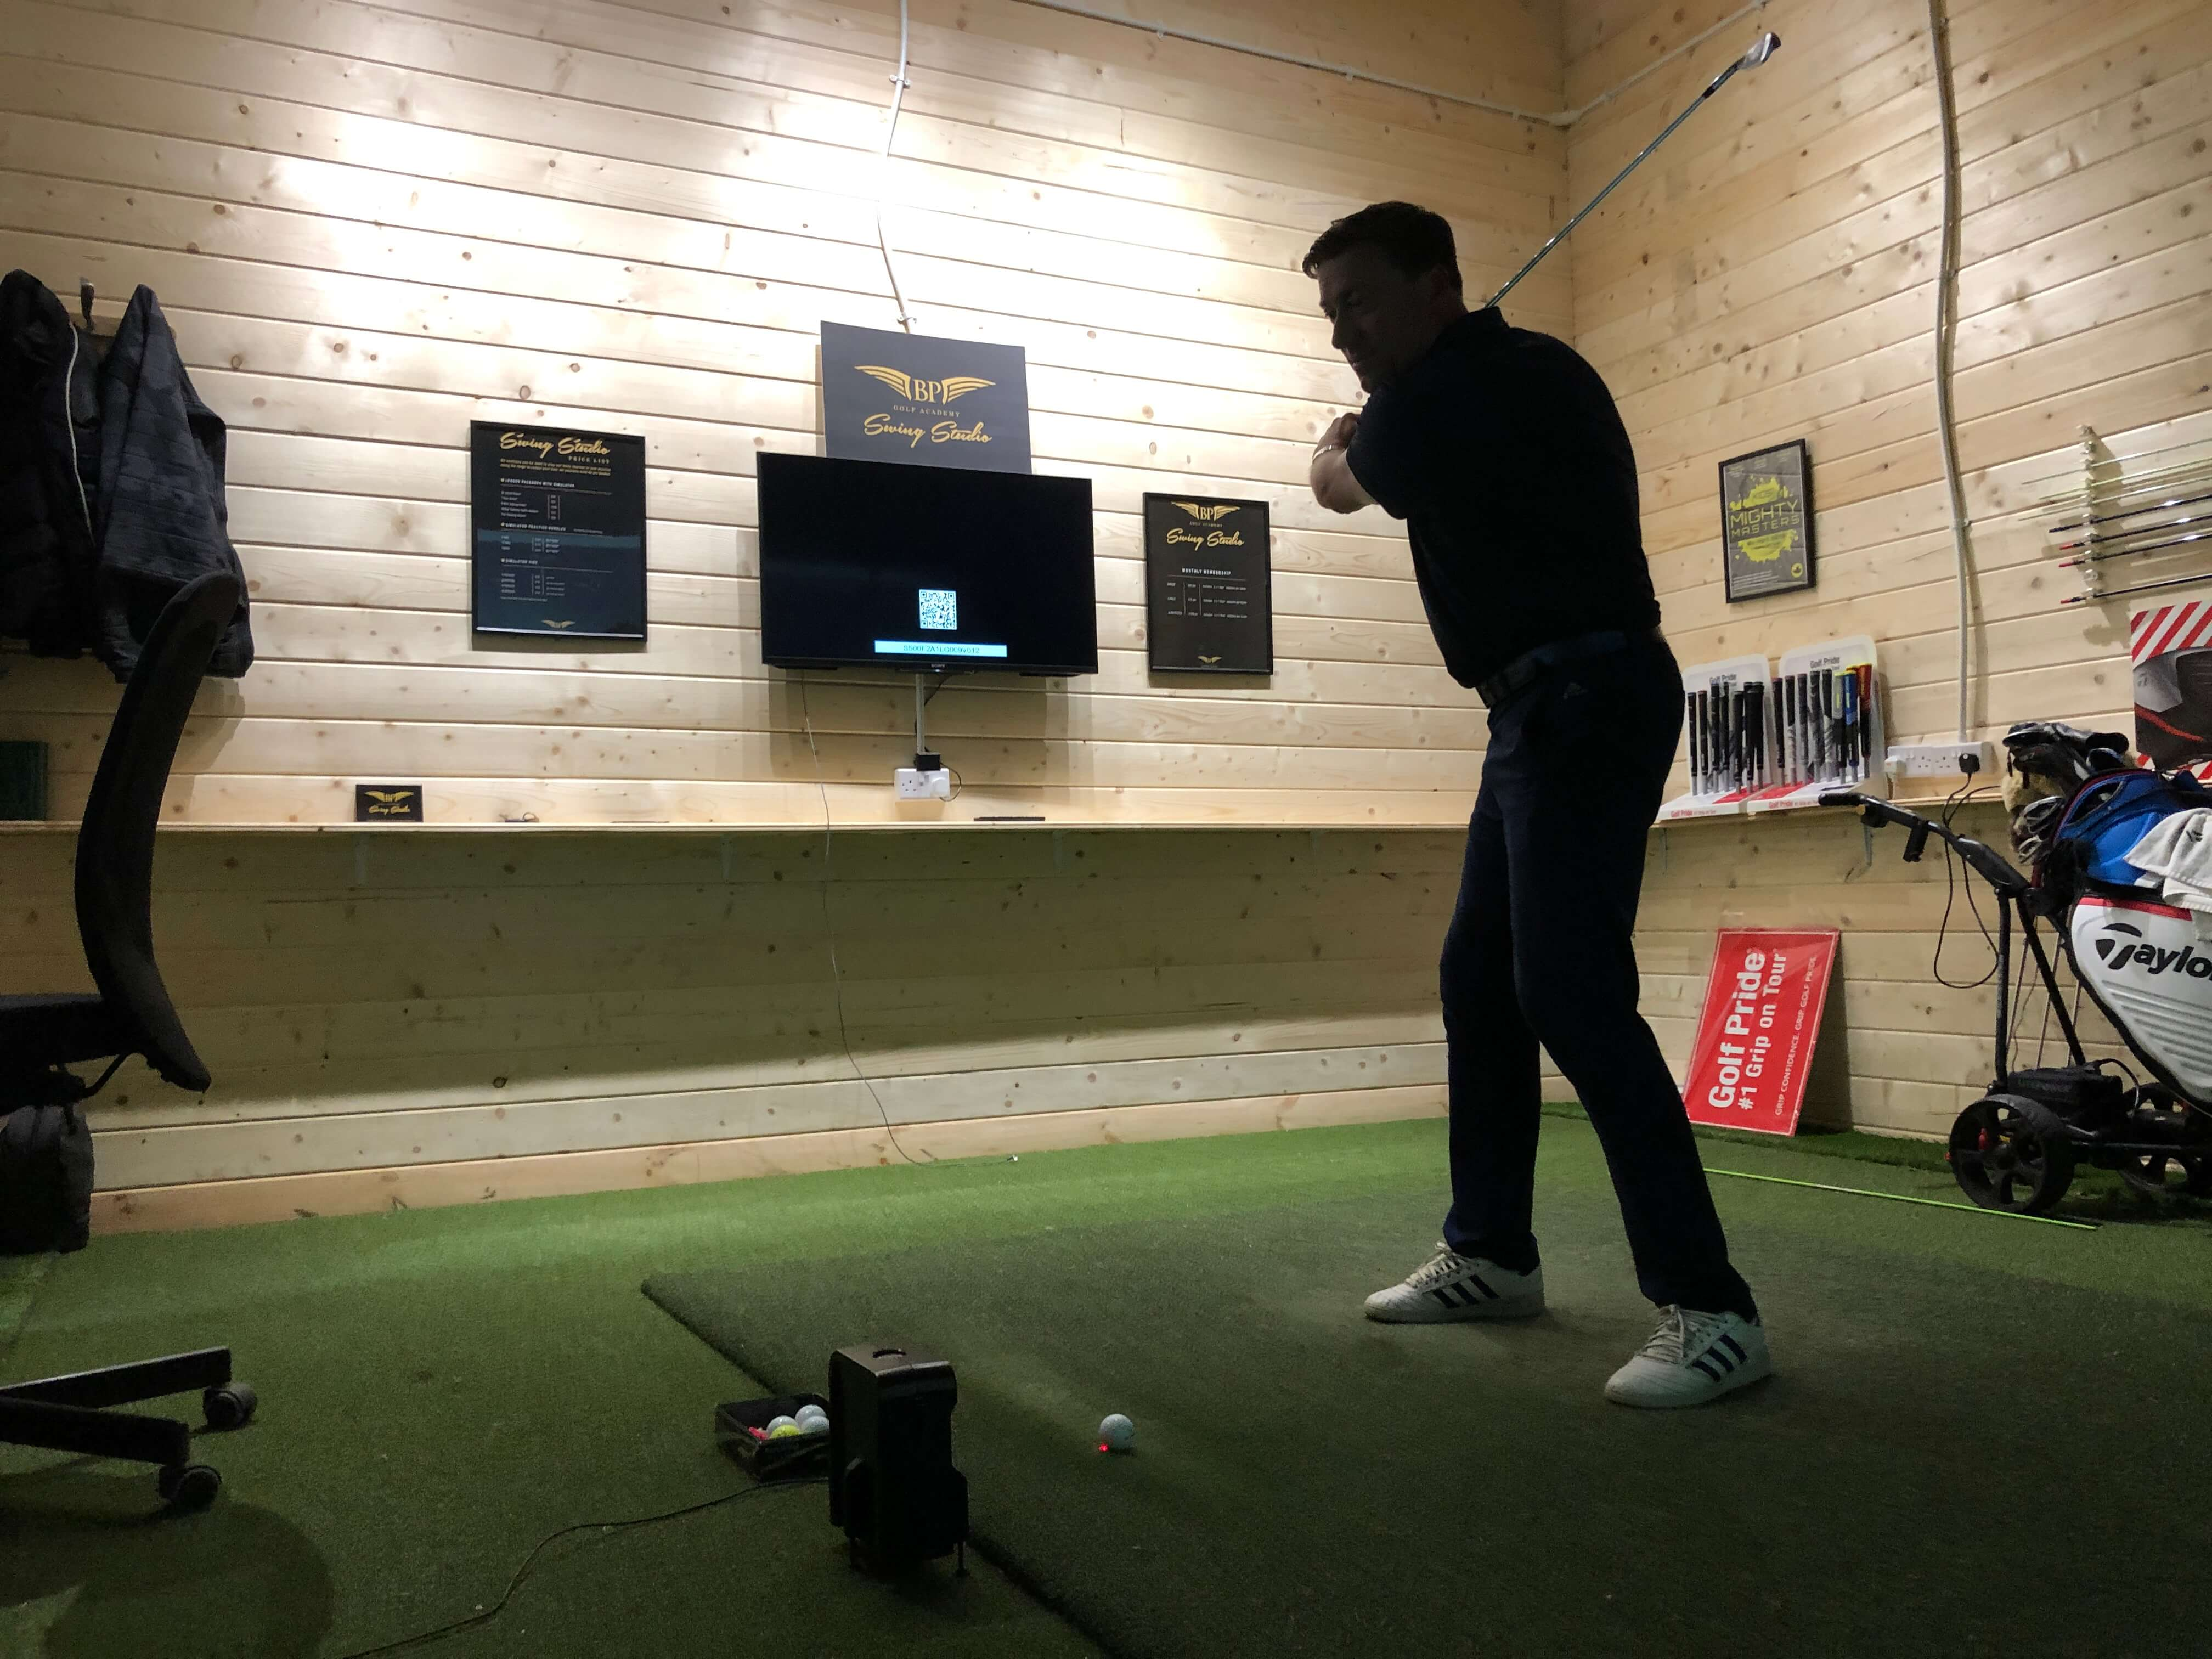 The Bradley Preston Golf Studio at Epping Golf Club